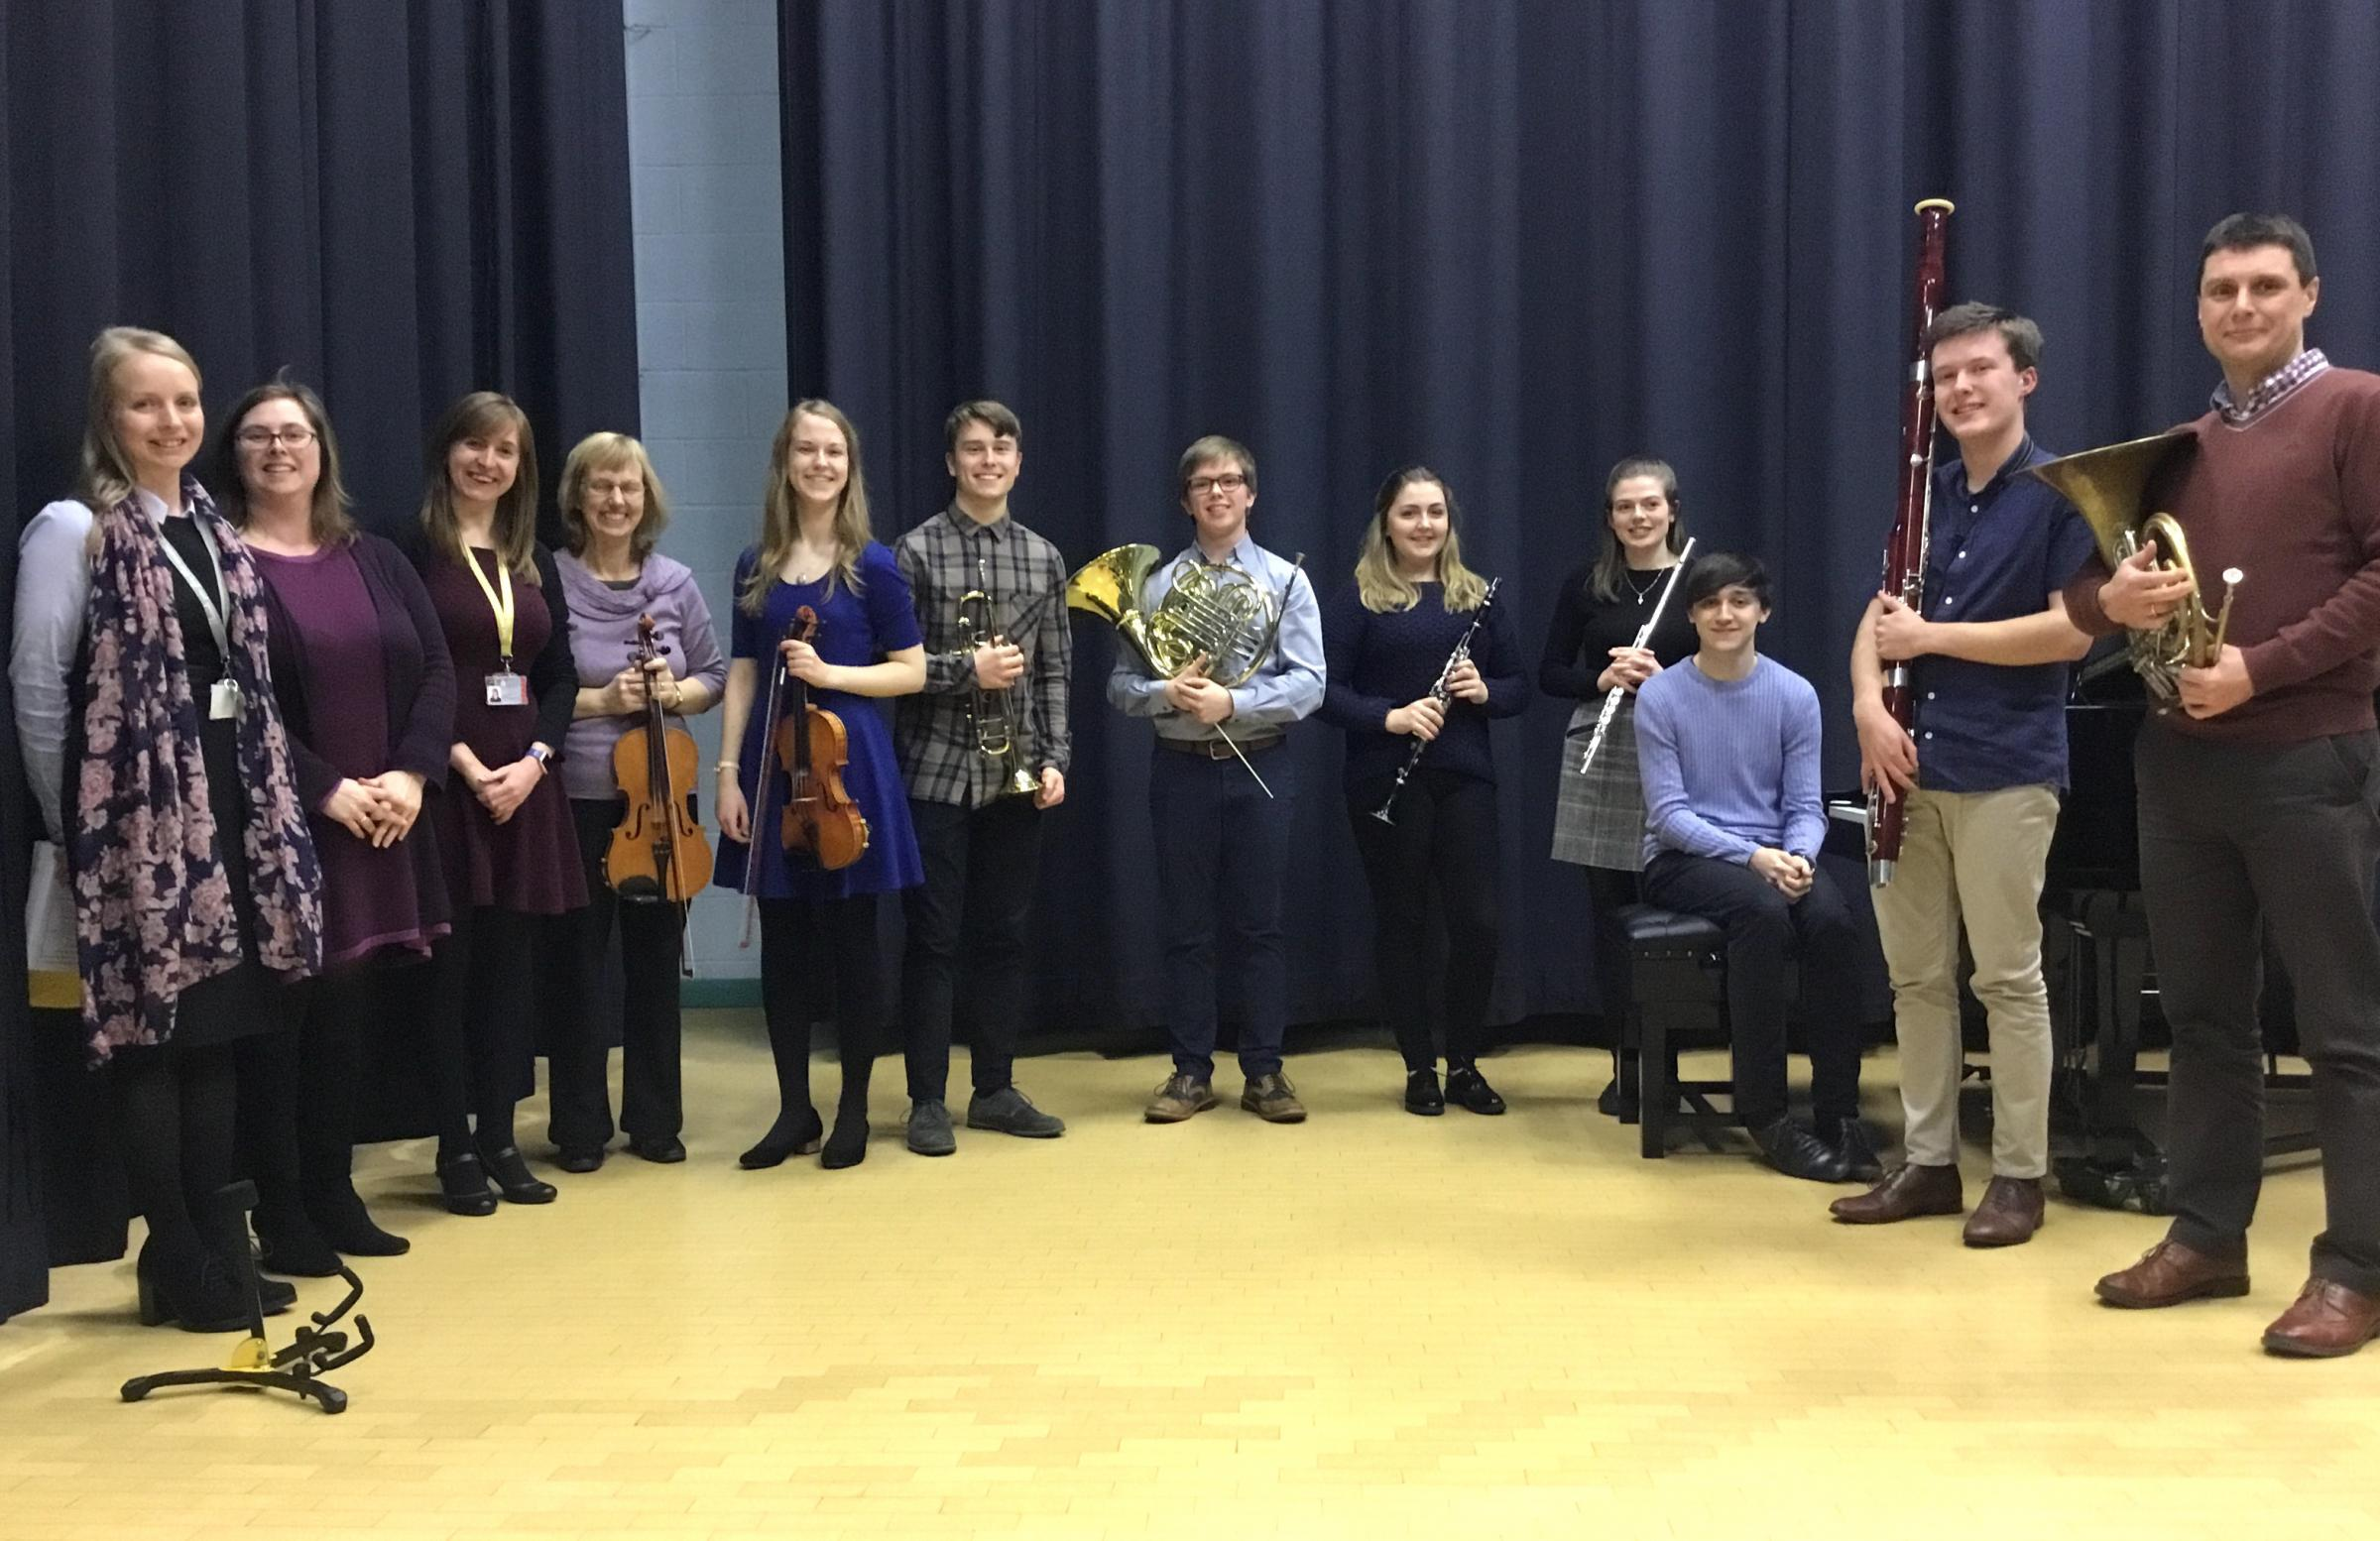 The young musicians with their music teachers